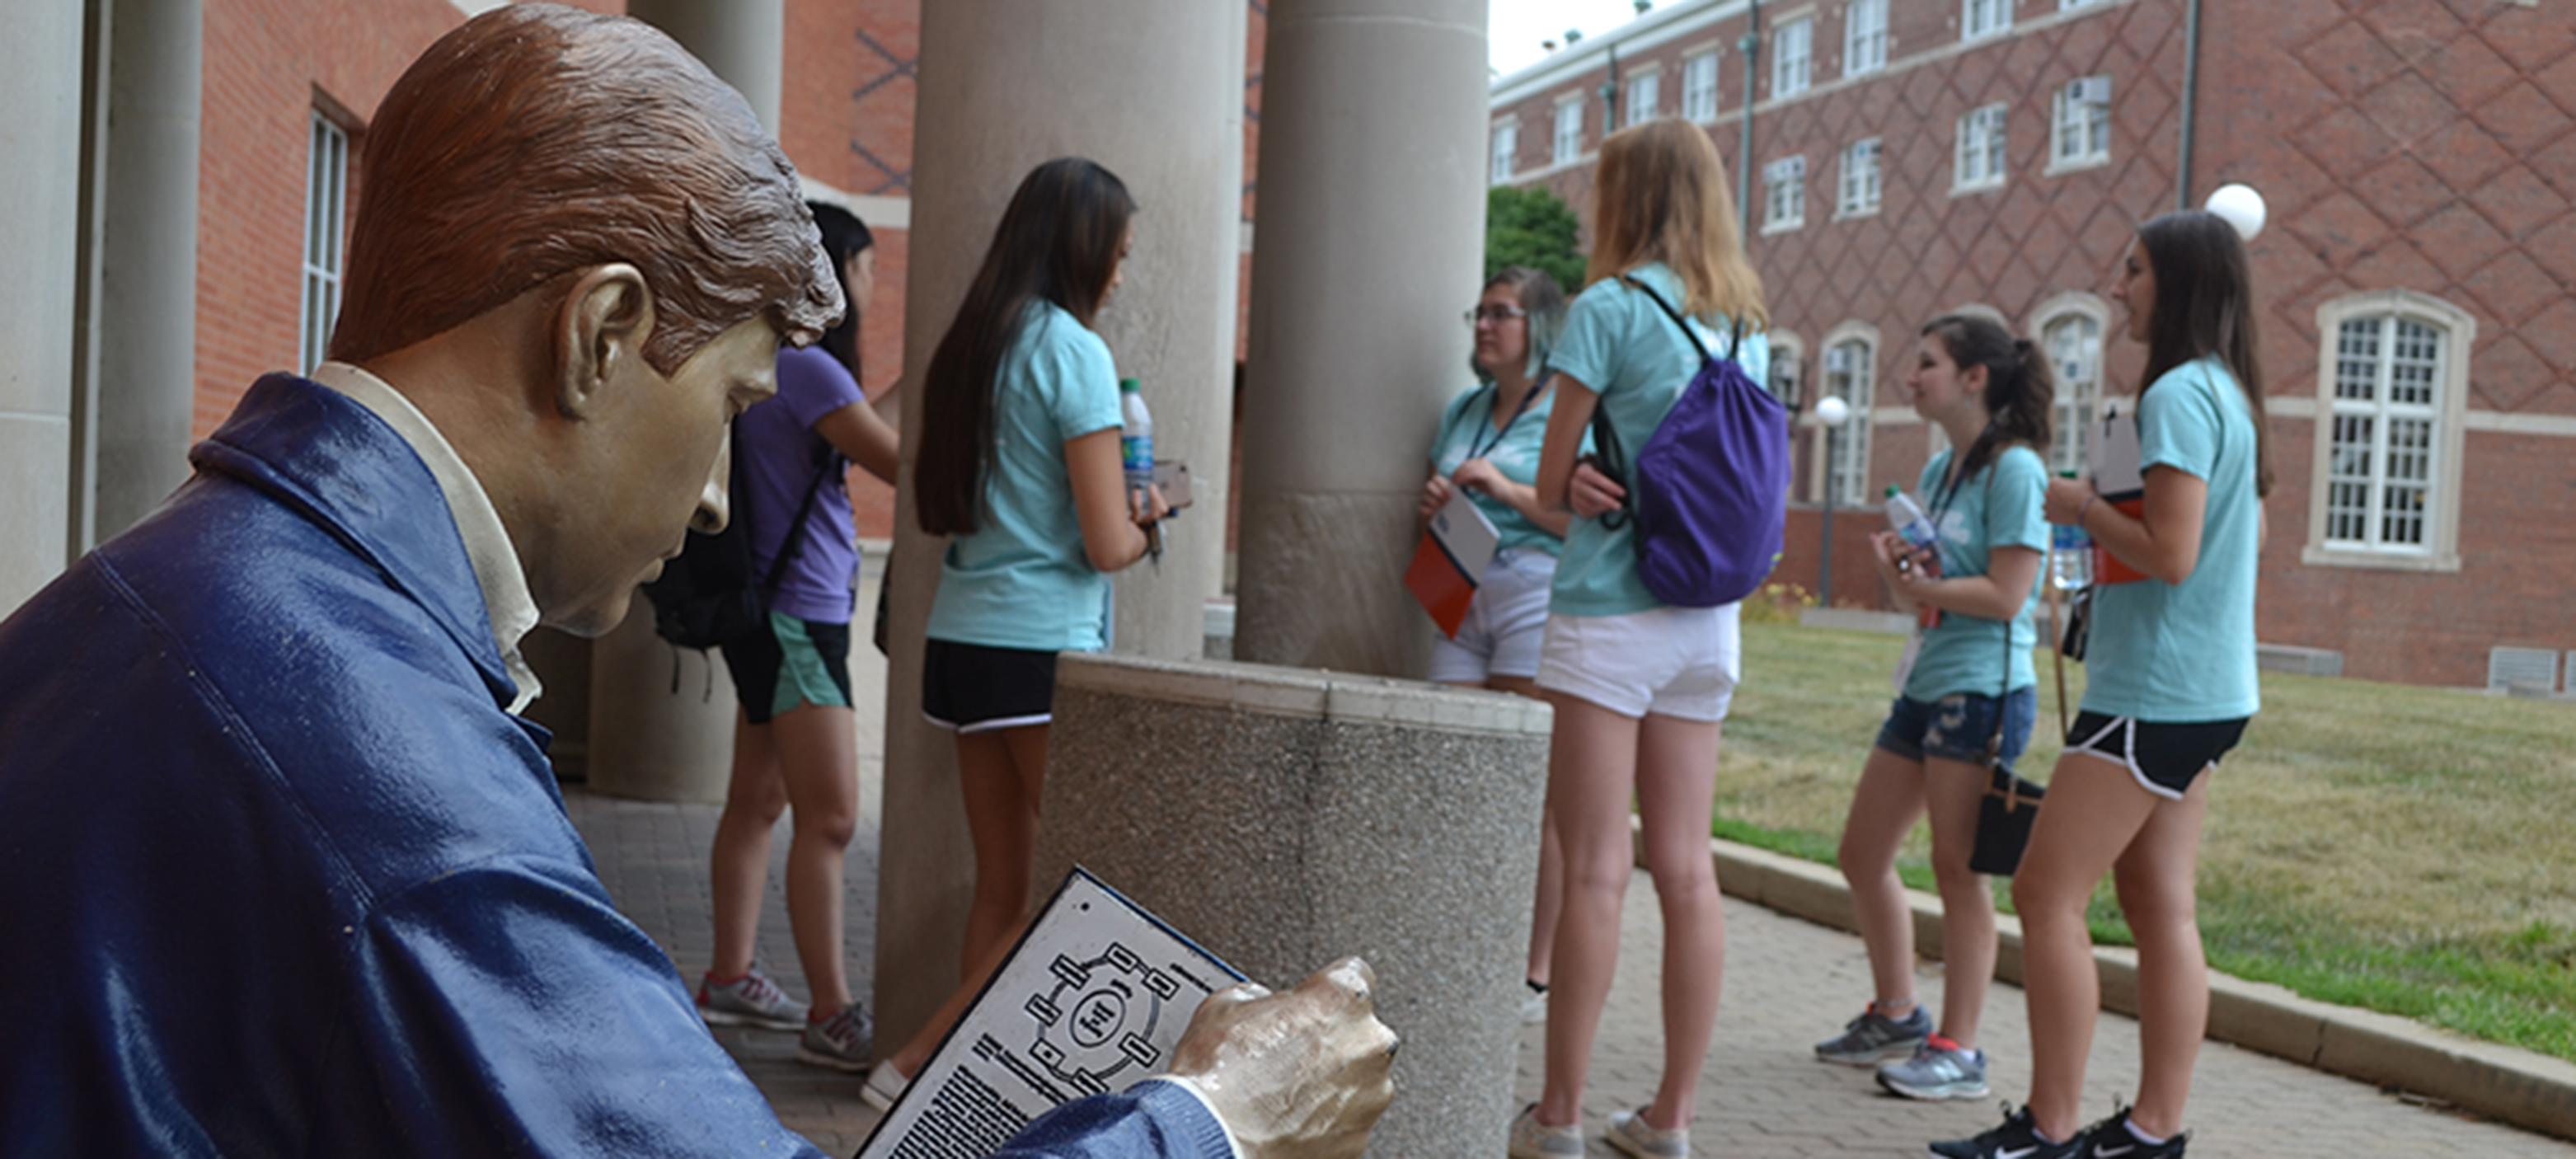 At the fall 2019 WIE Orientation, a group of female engineering freshmen chat on the south portico of Grainger Library as Grainger Bob looks on.